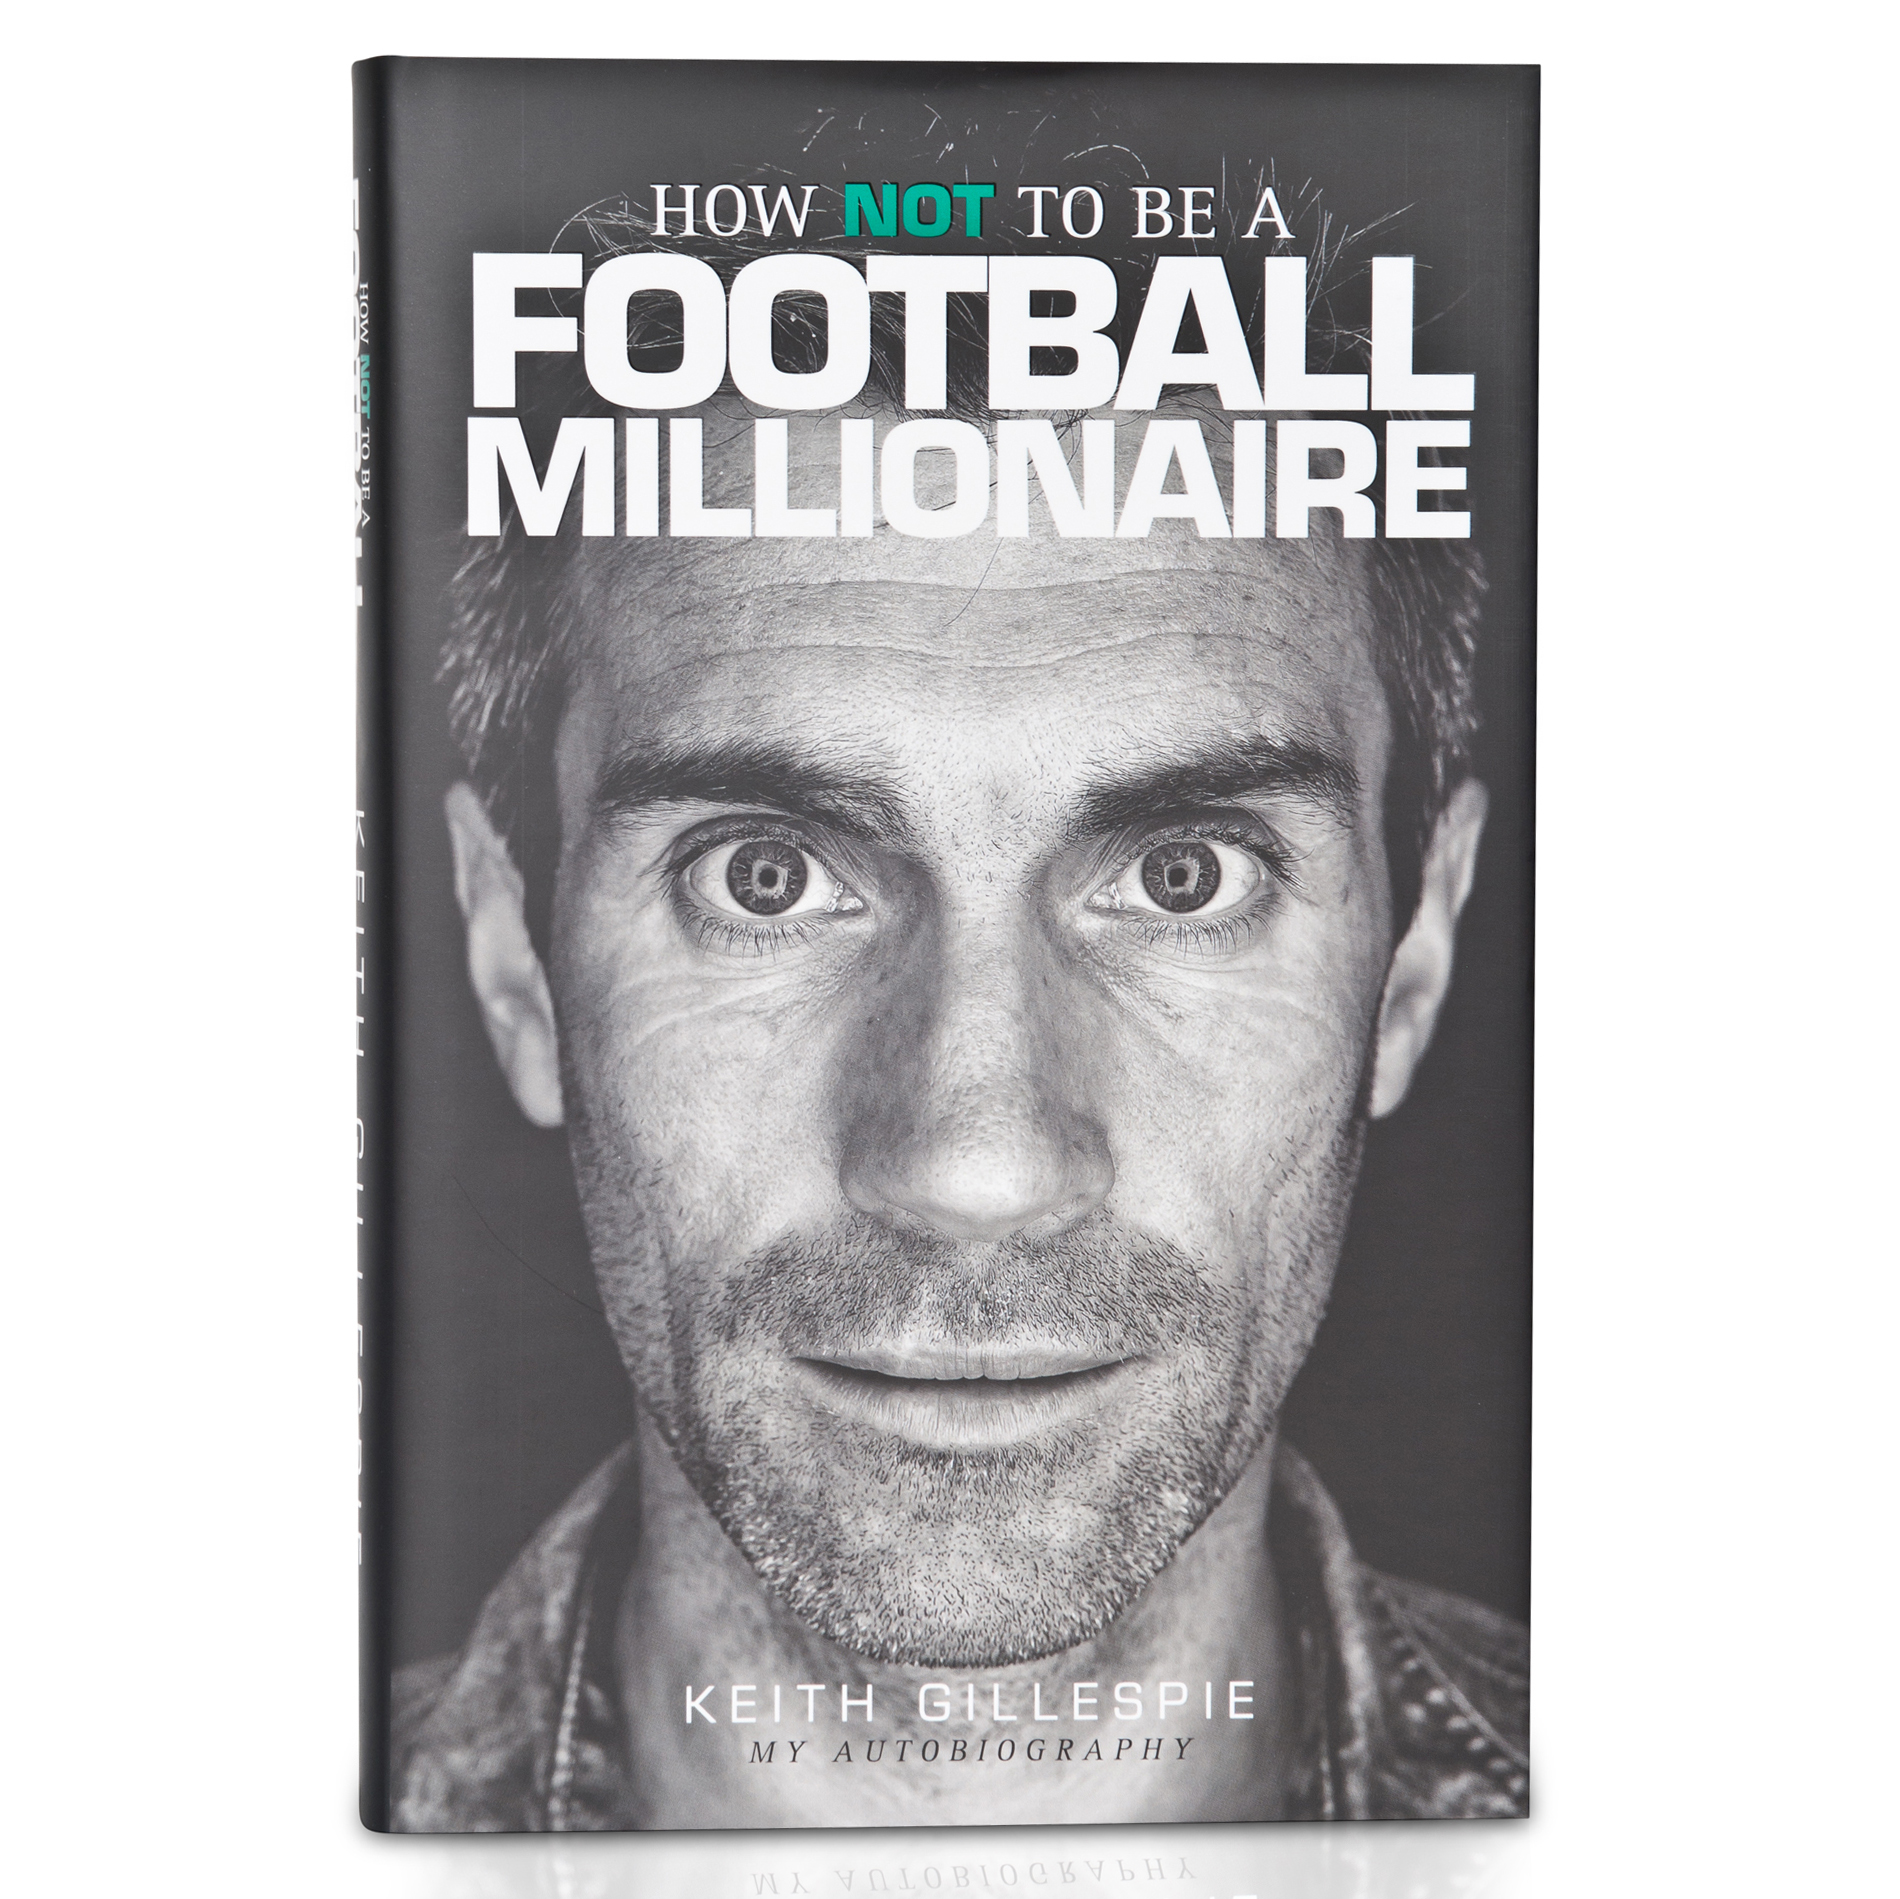 Manchester United How Not To Be A Football Millionaire - Keith Gillespie My Autobiography Hardback Book